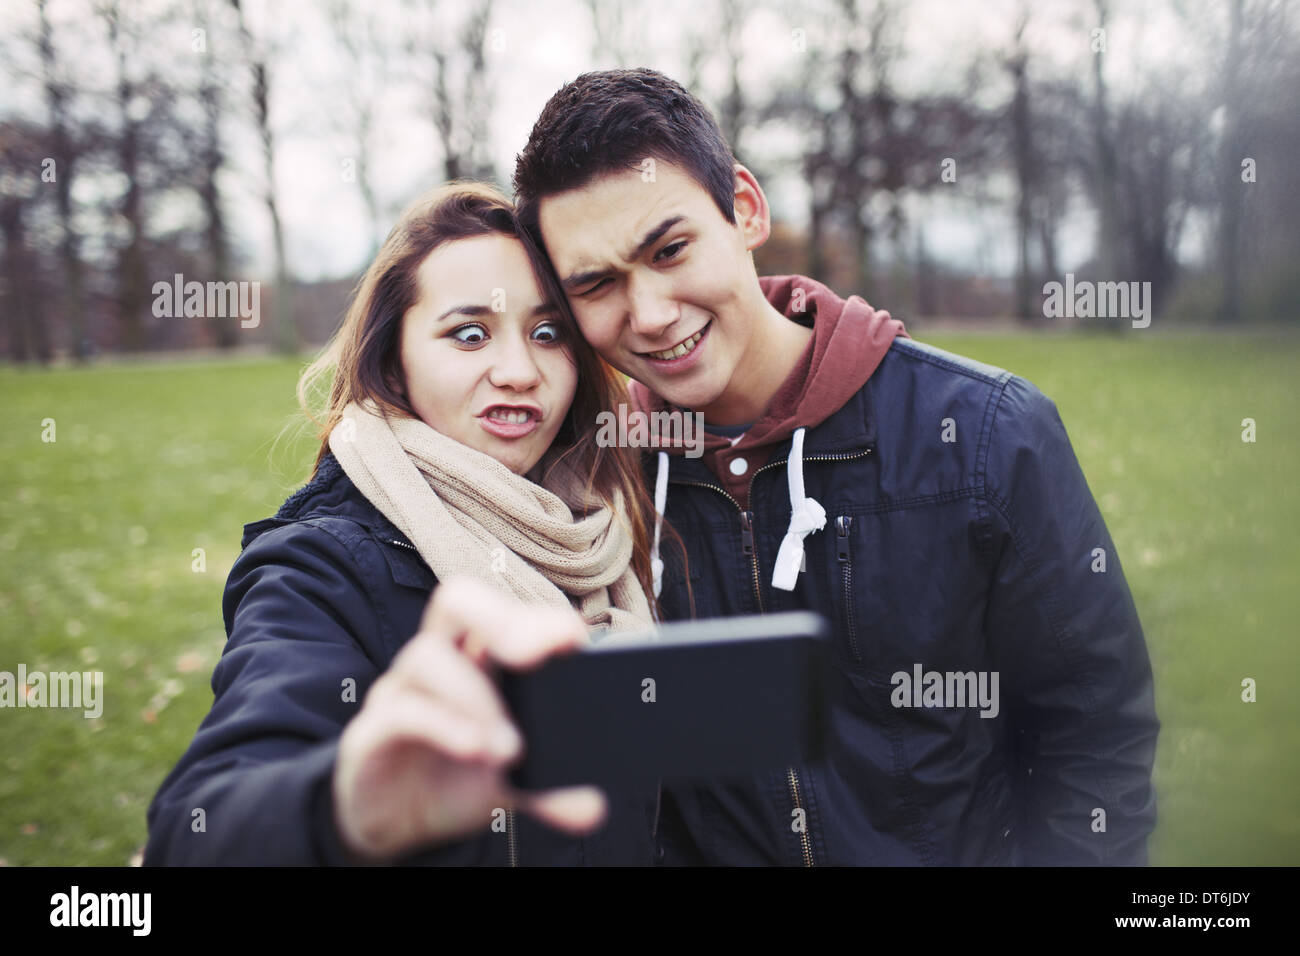 Funny teenage couple photographing themselves with smart phone in the park.  Cute young girl with her boyfriend taking photos. - Stock Image